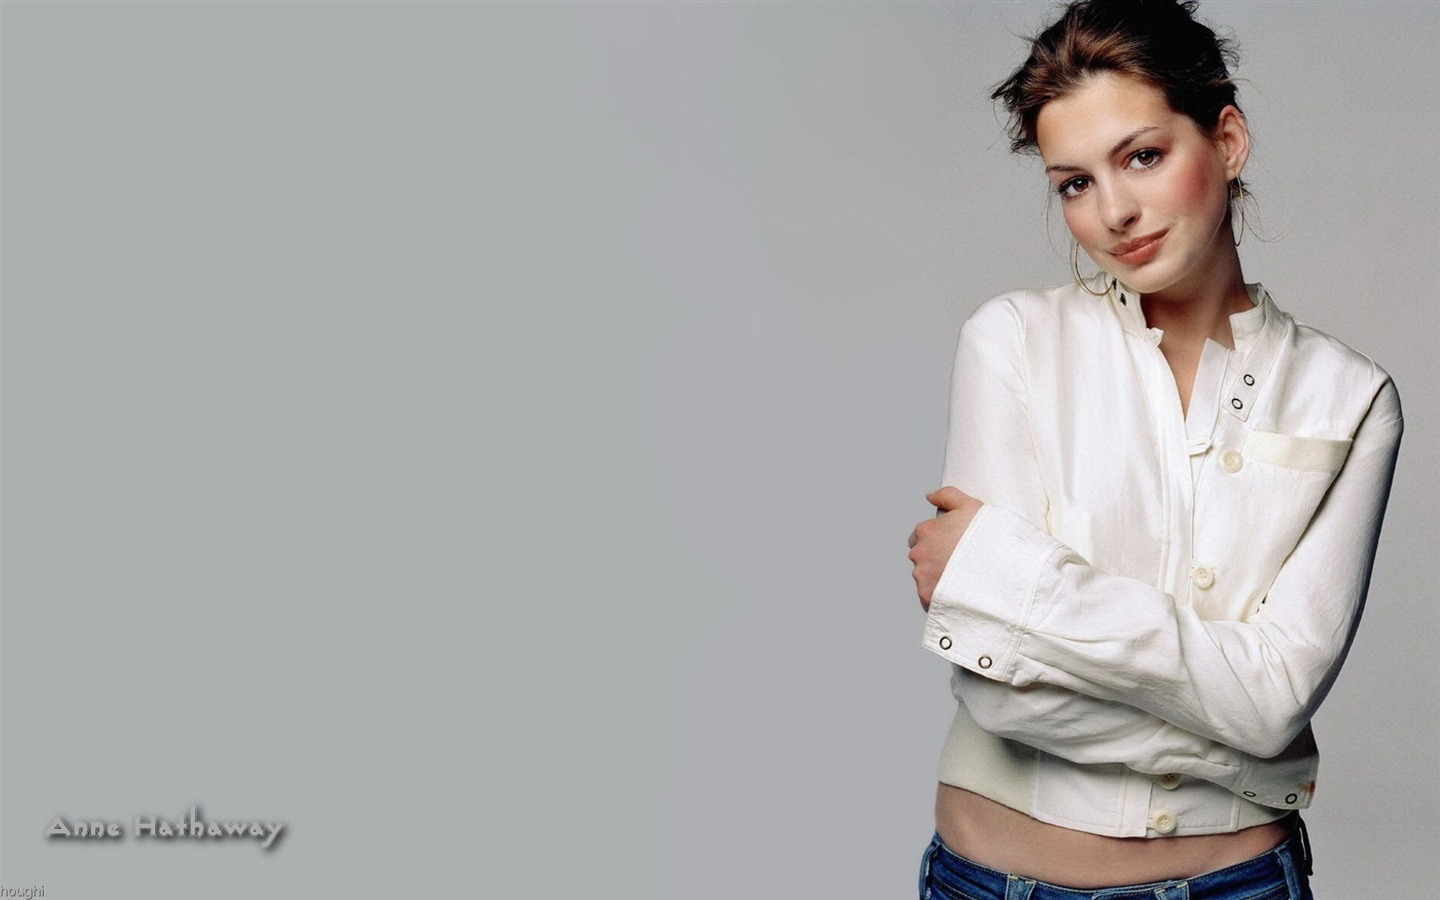 Anne Hathaway #044 - 1440x900 Wallpapers Pictures Photos Images